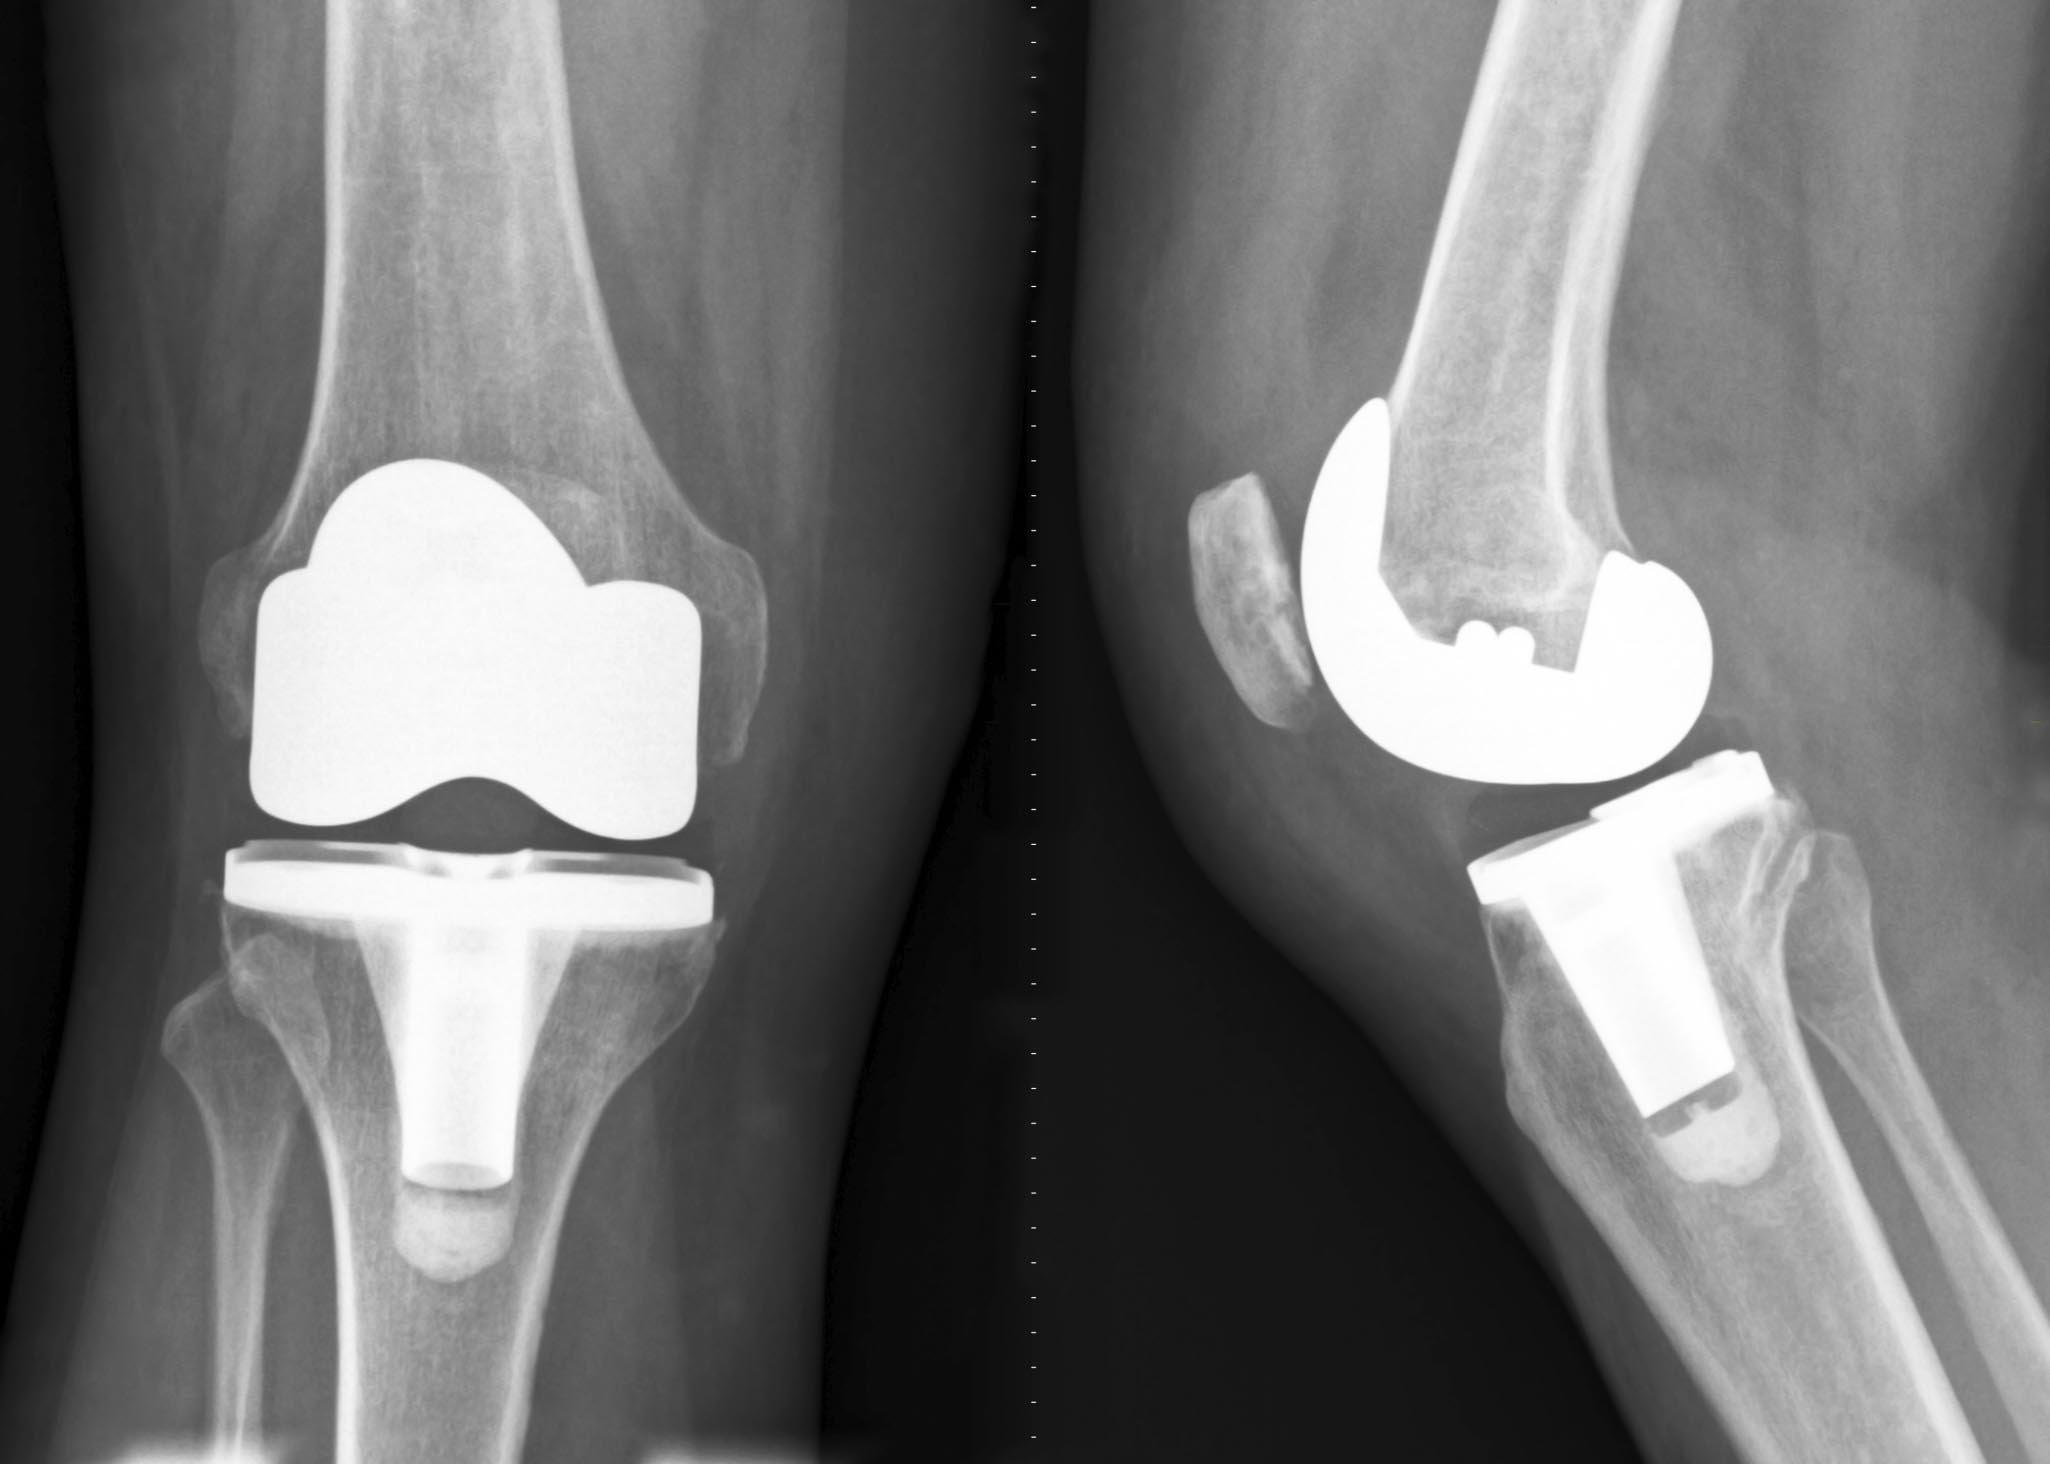 knee prothesis replacements Complications of total knee arthroplasty  wear in total hip and knee replacements j bone joint surg am 1999 jan 81 (1):115-36.